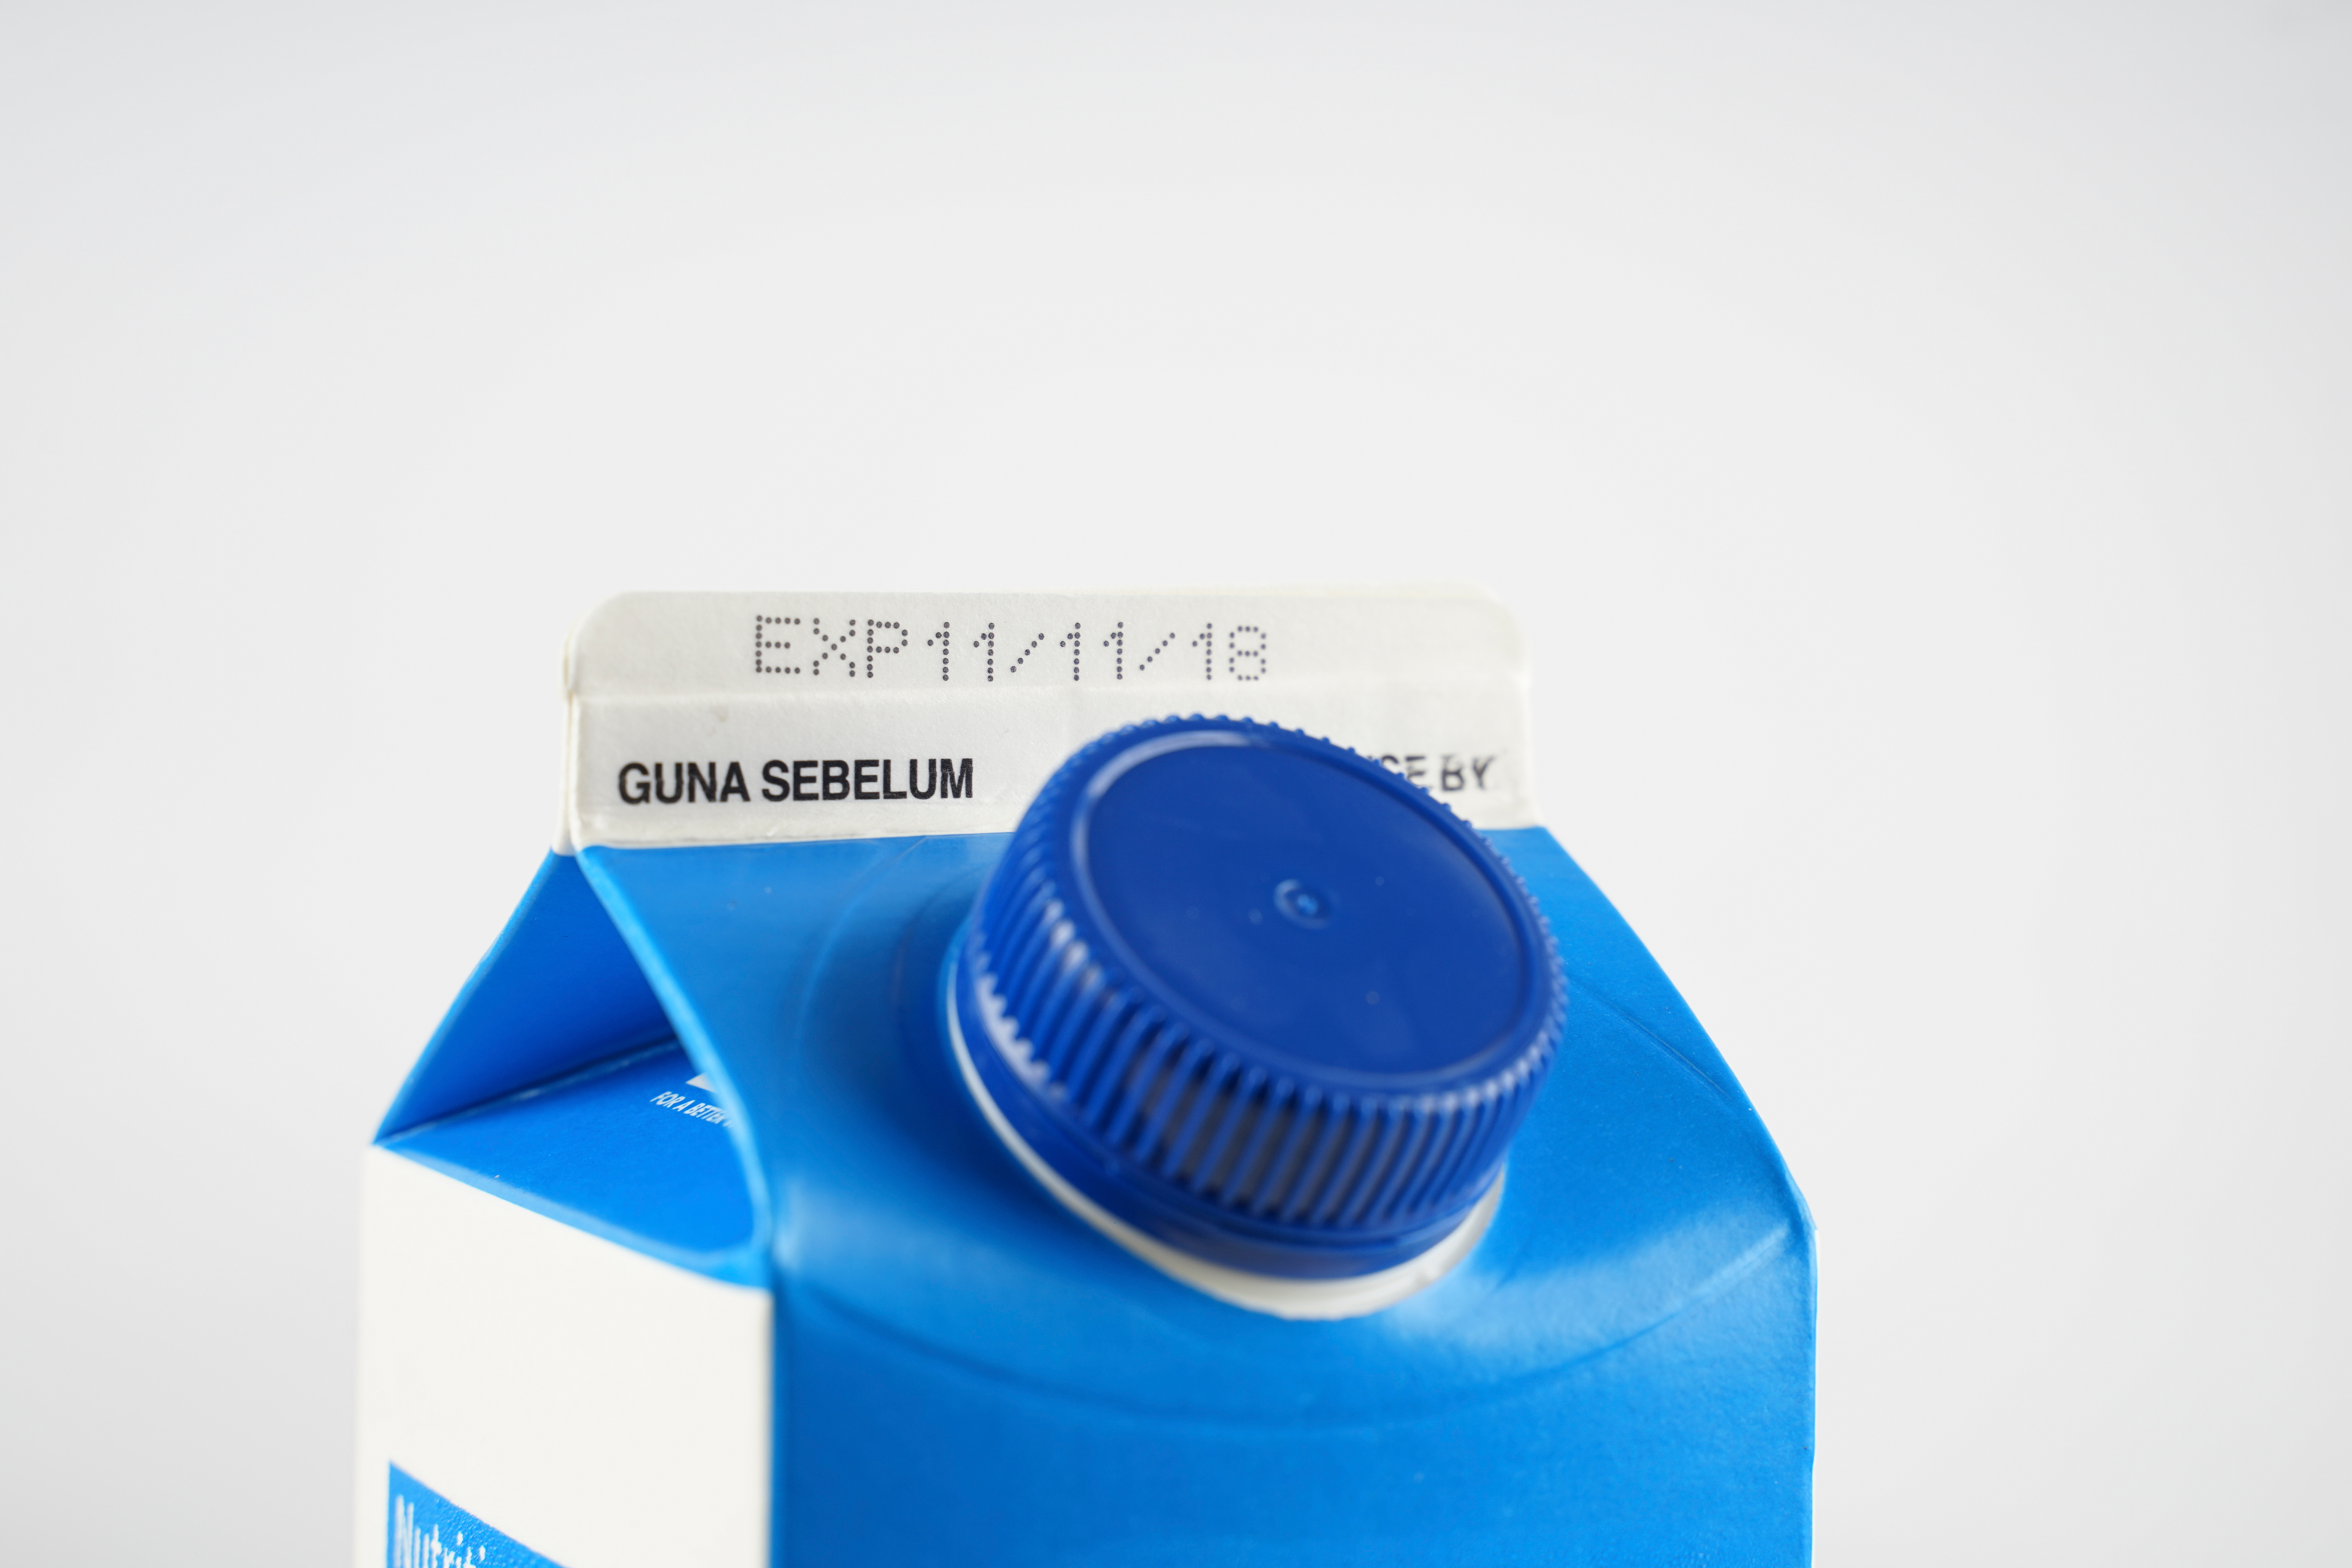 A milk carton with a sell-by date